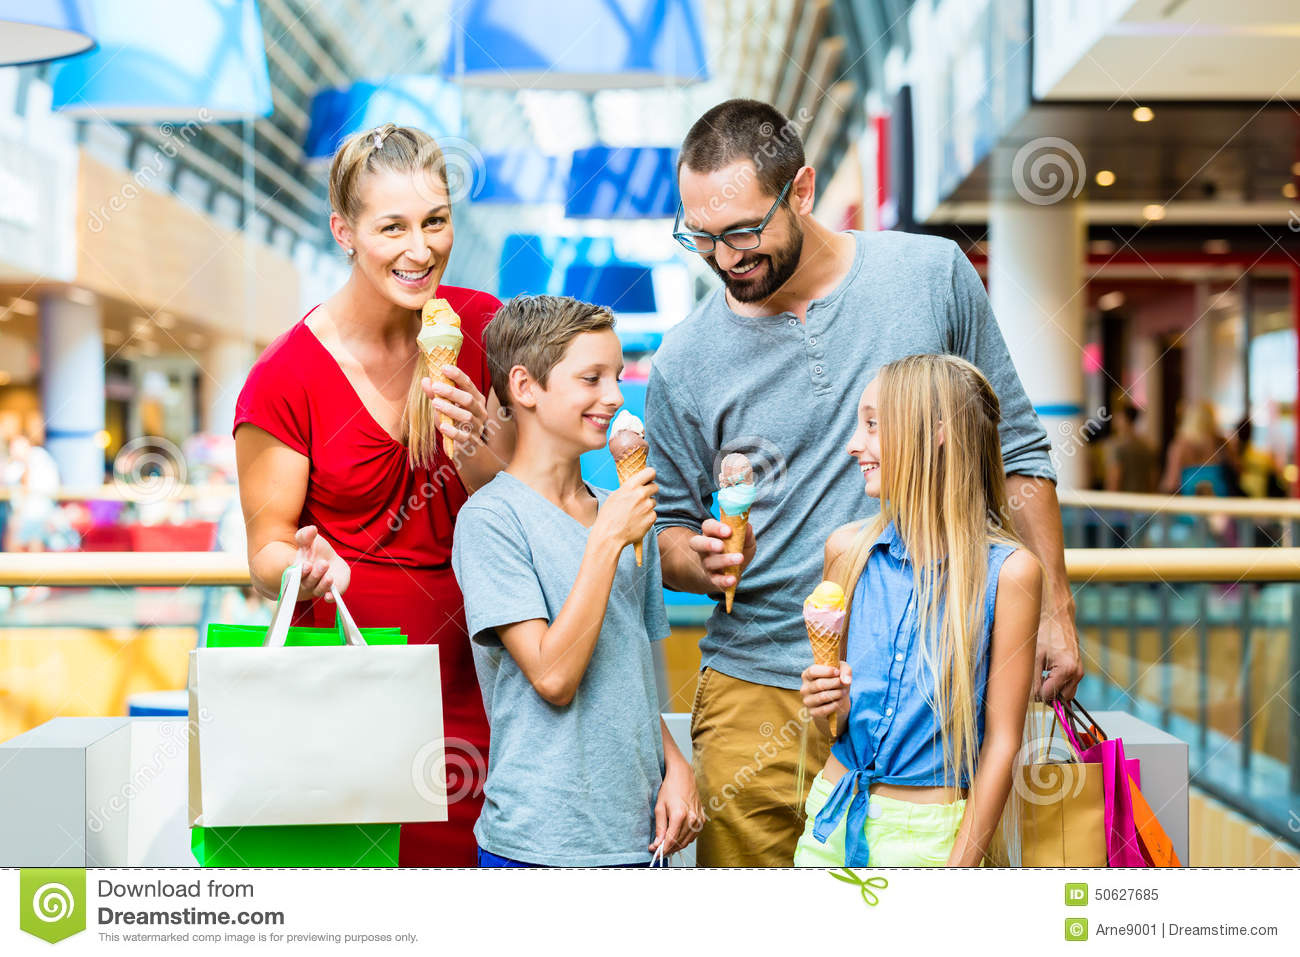 Family Eating Ice Cream In Shopping Mall Stock Photo ...